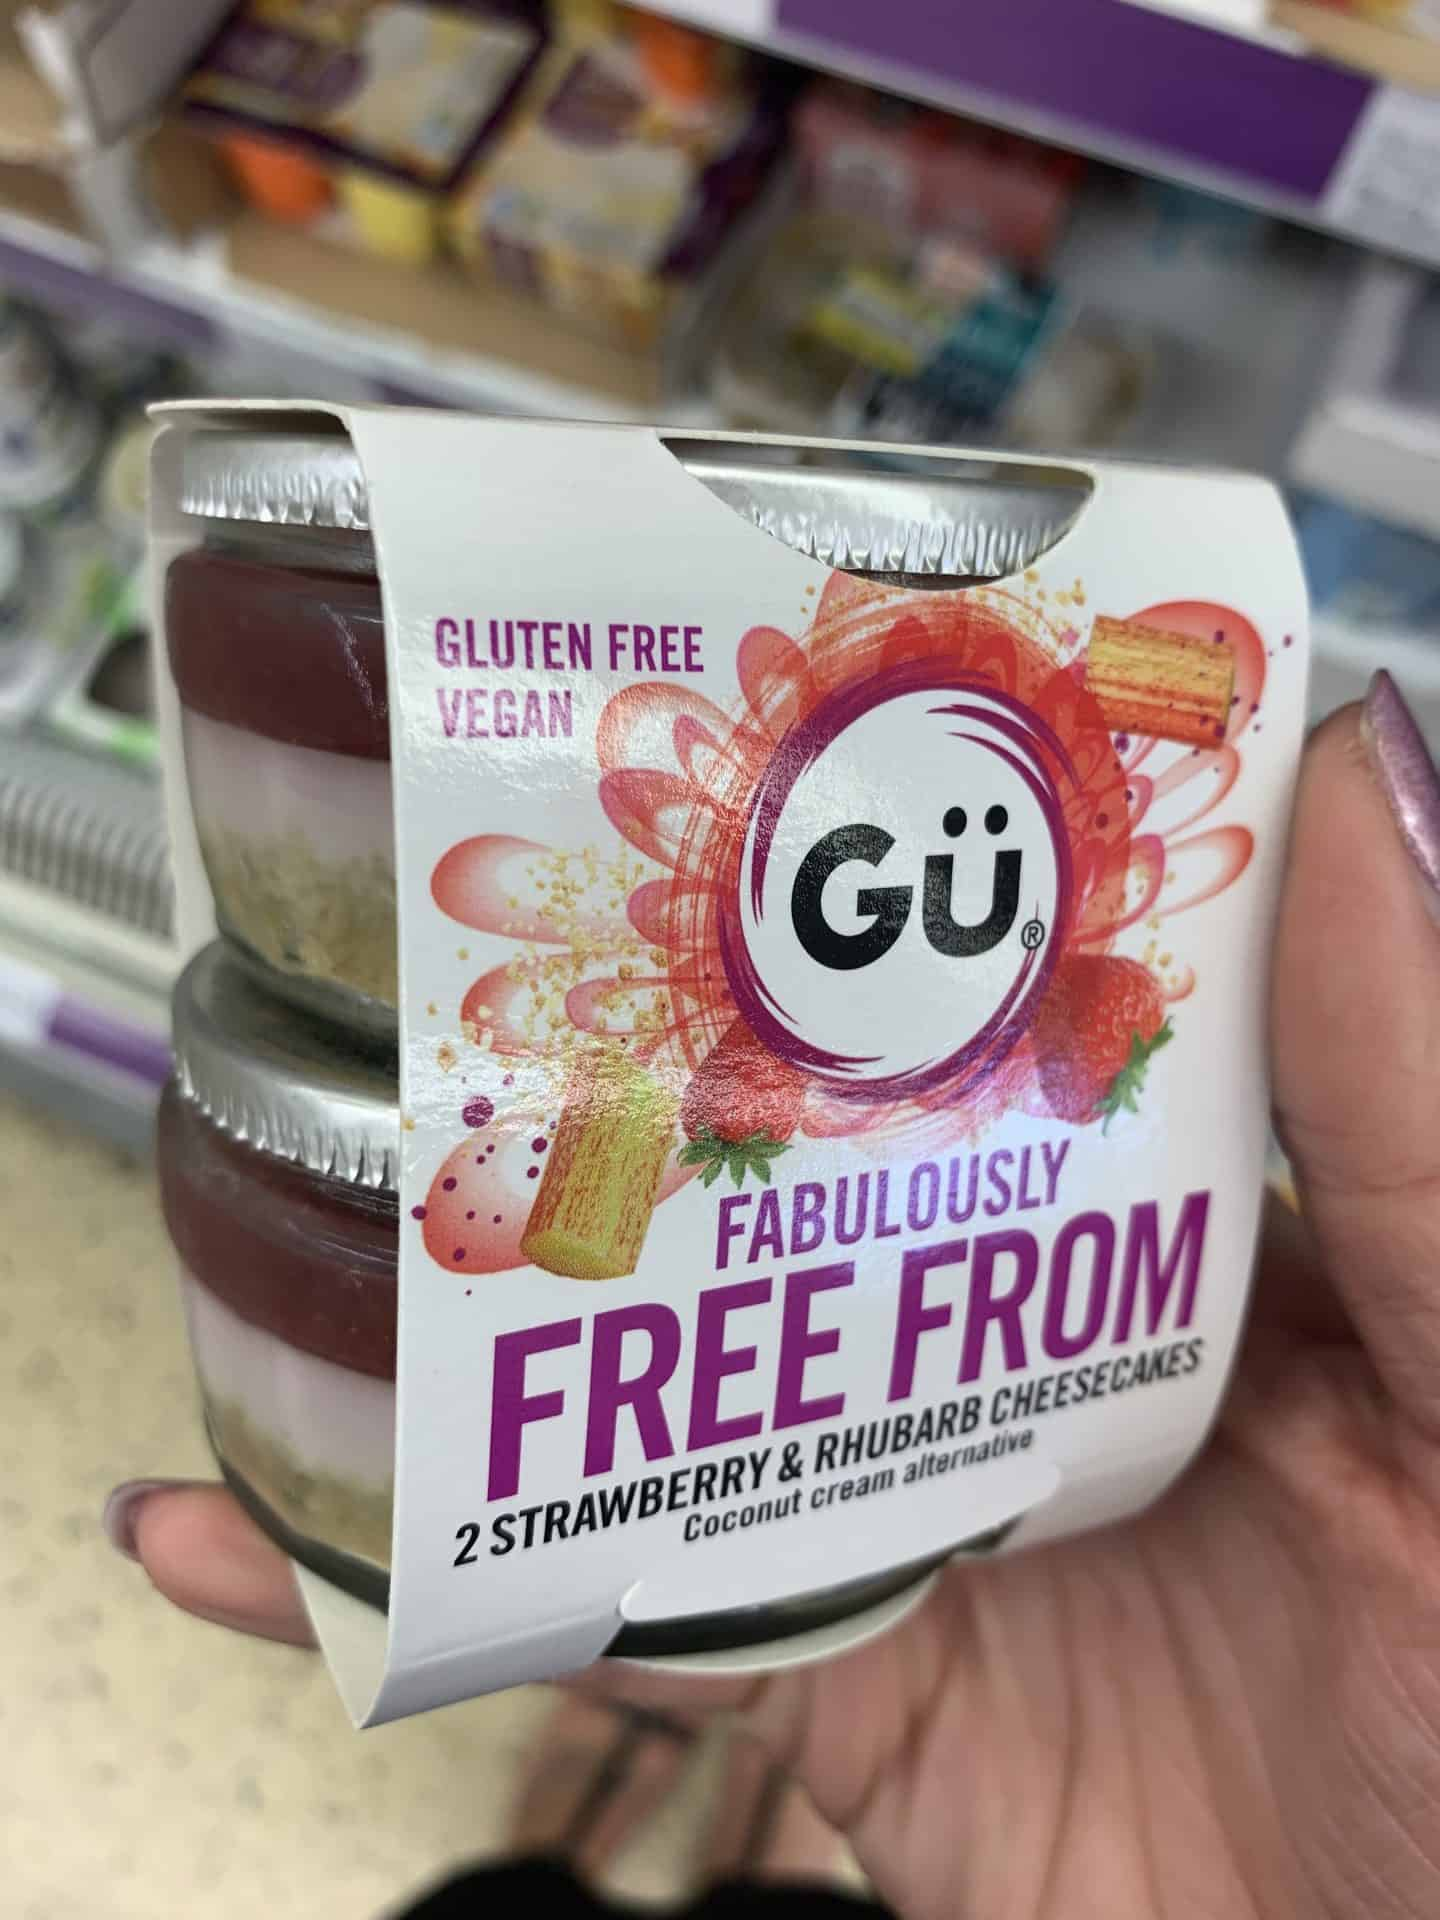 gu gluten free vegan puddings